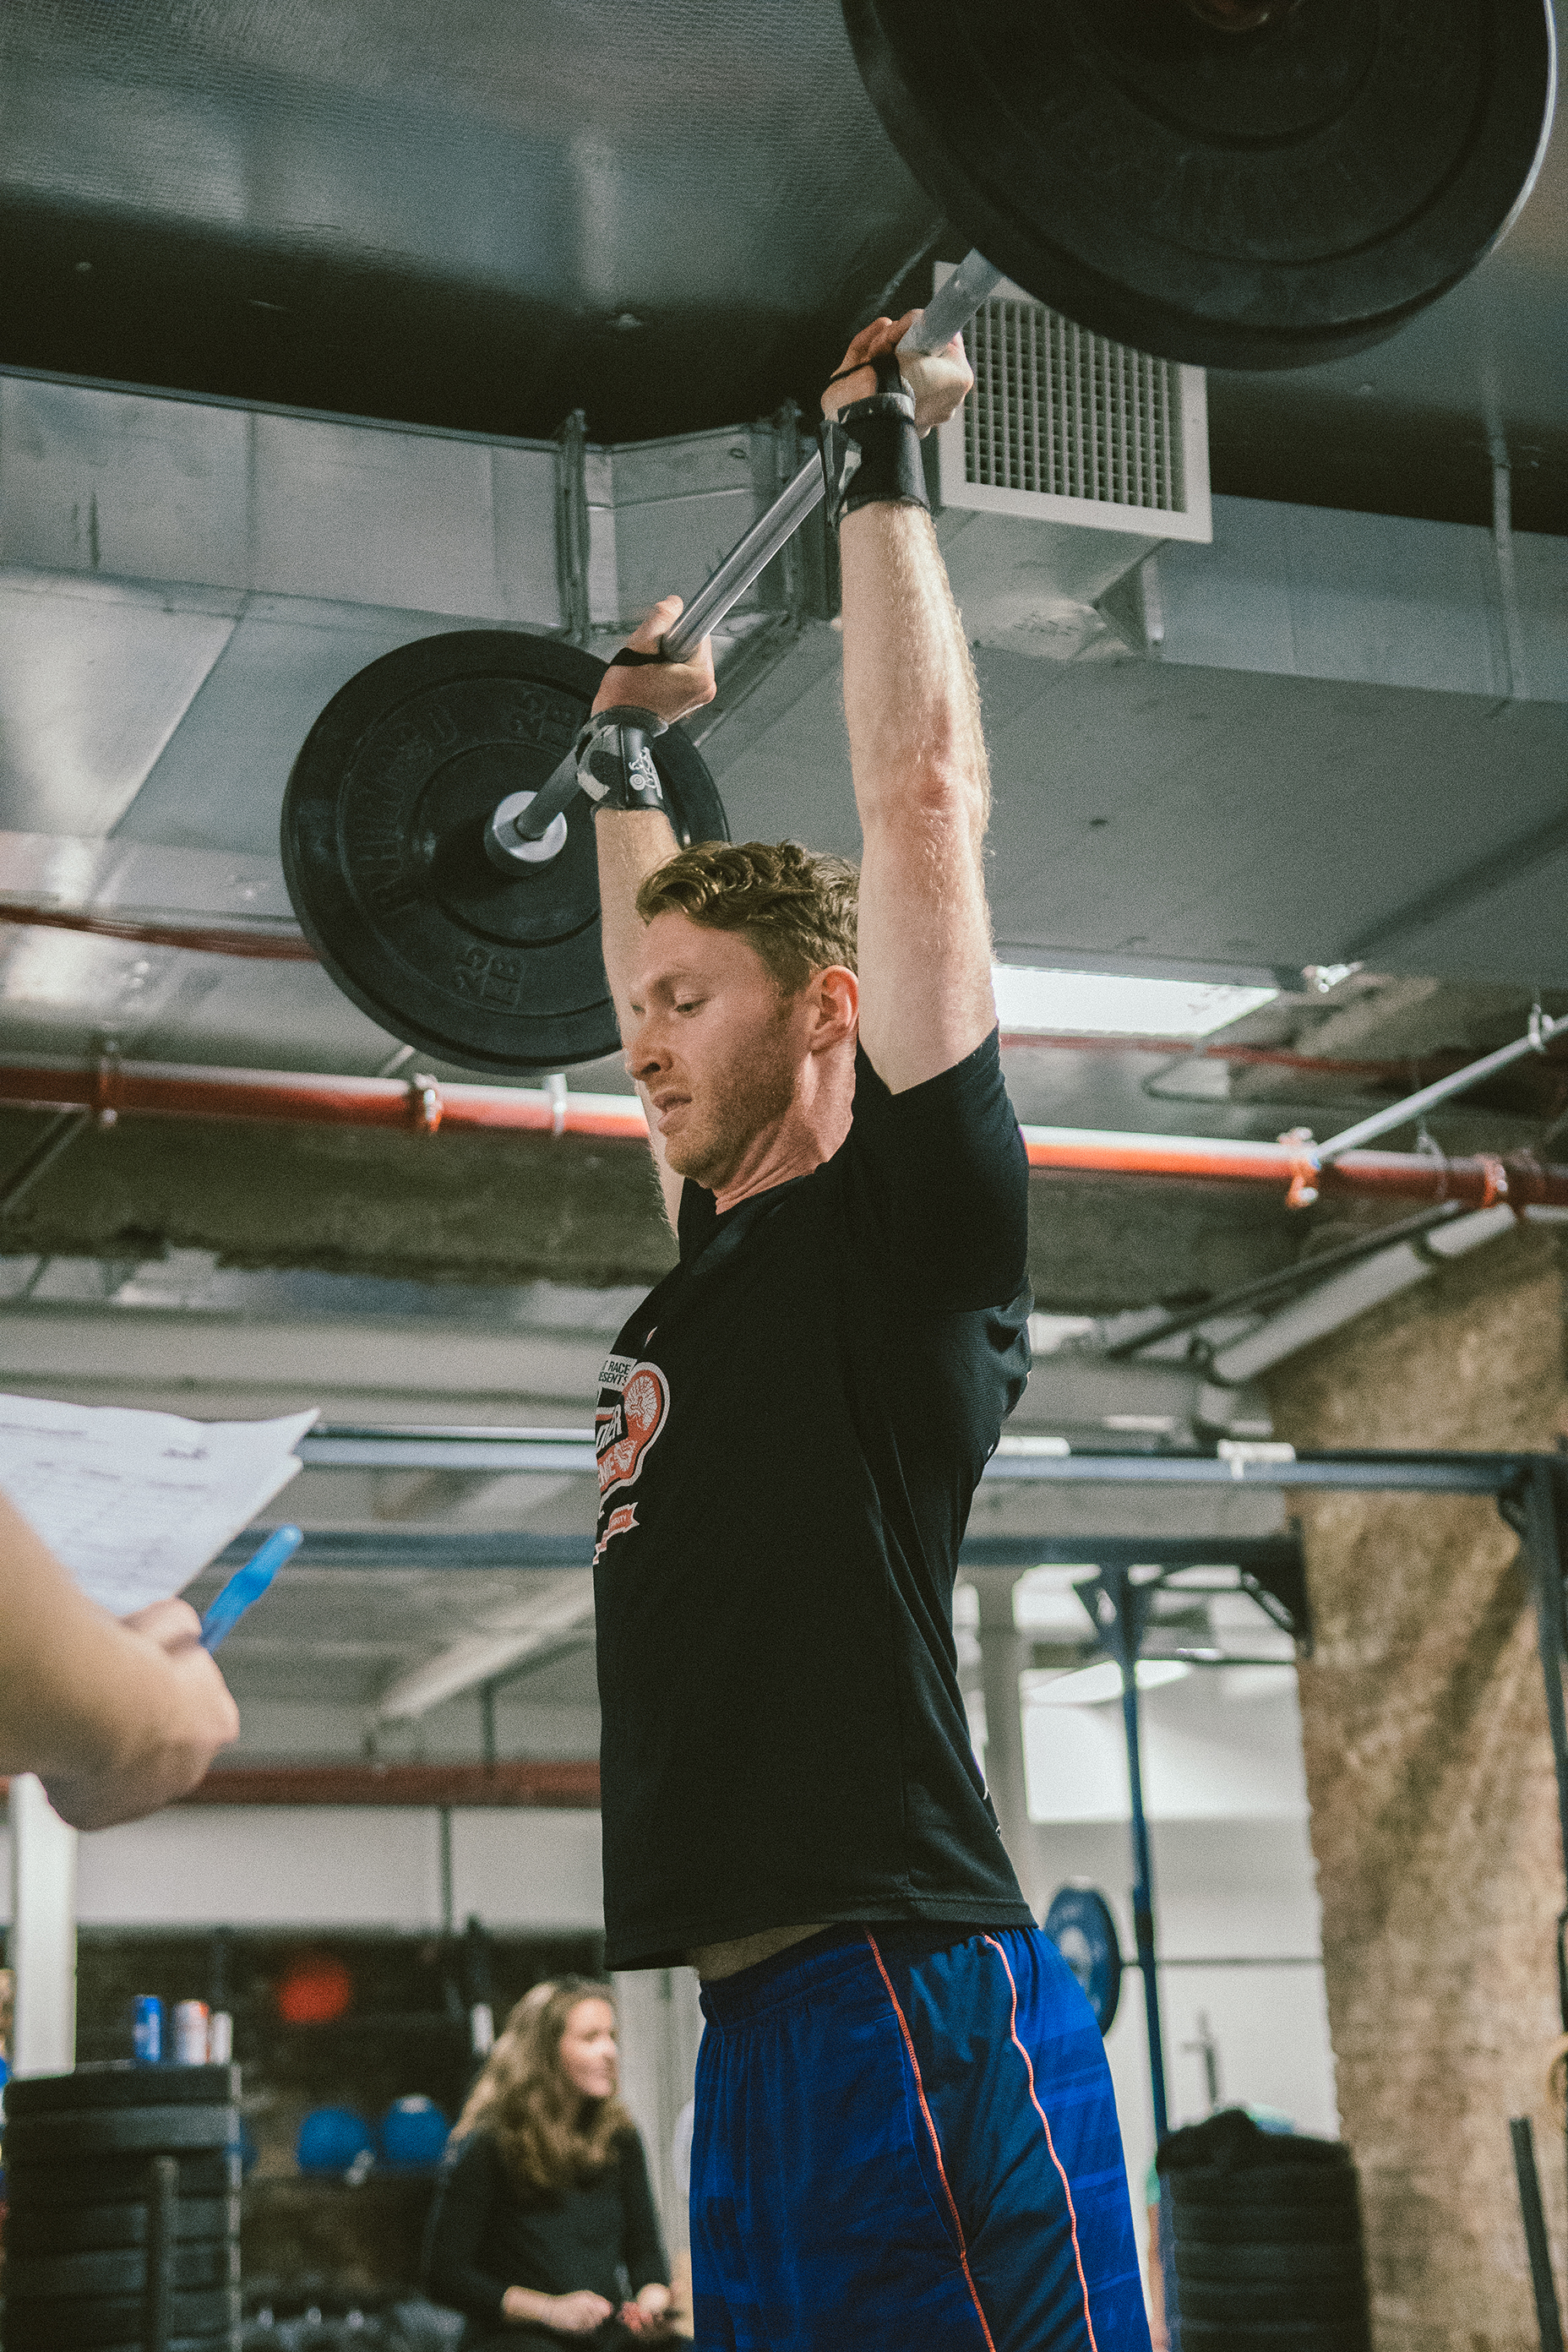 CrossFit Union Strong 17.5 208 20170325.jpg